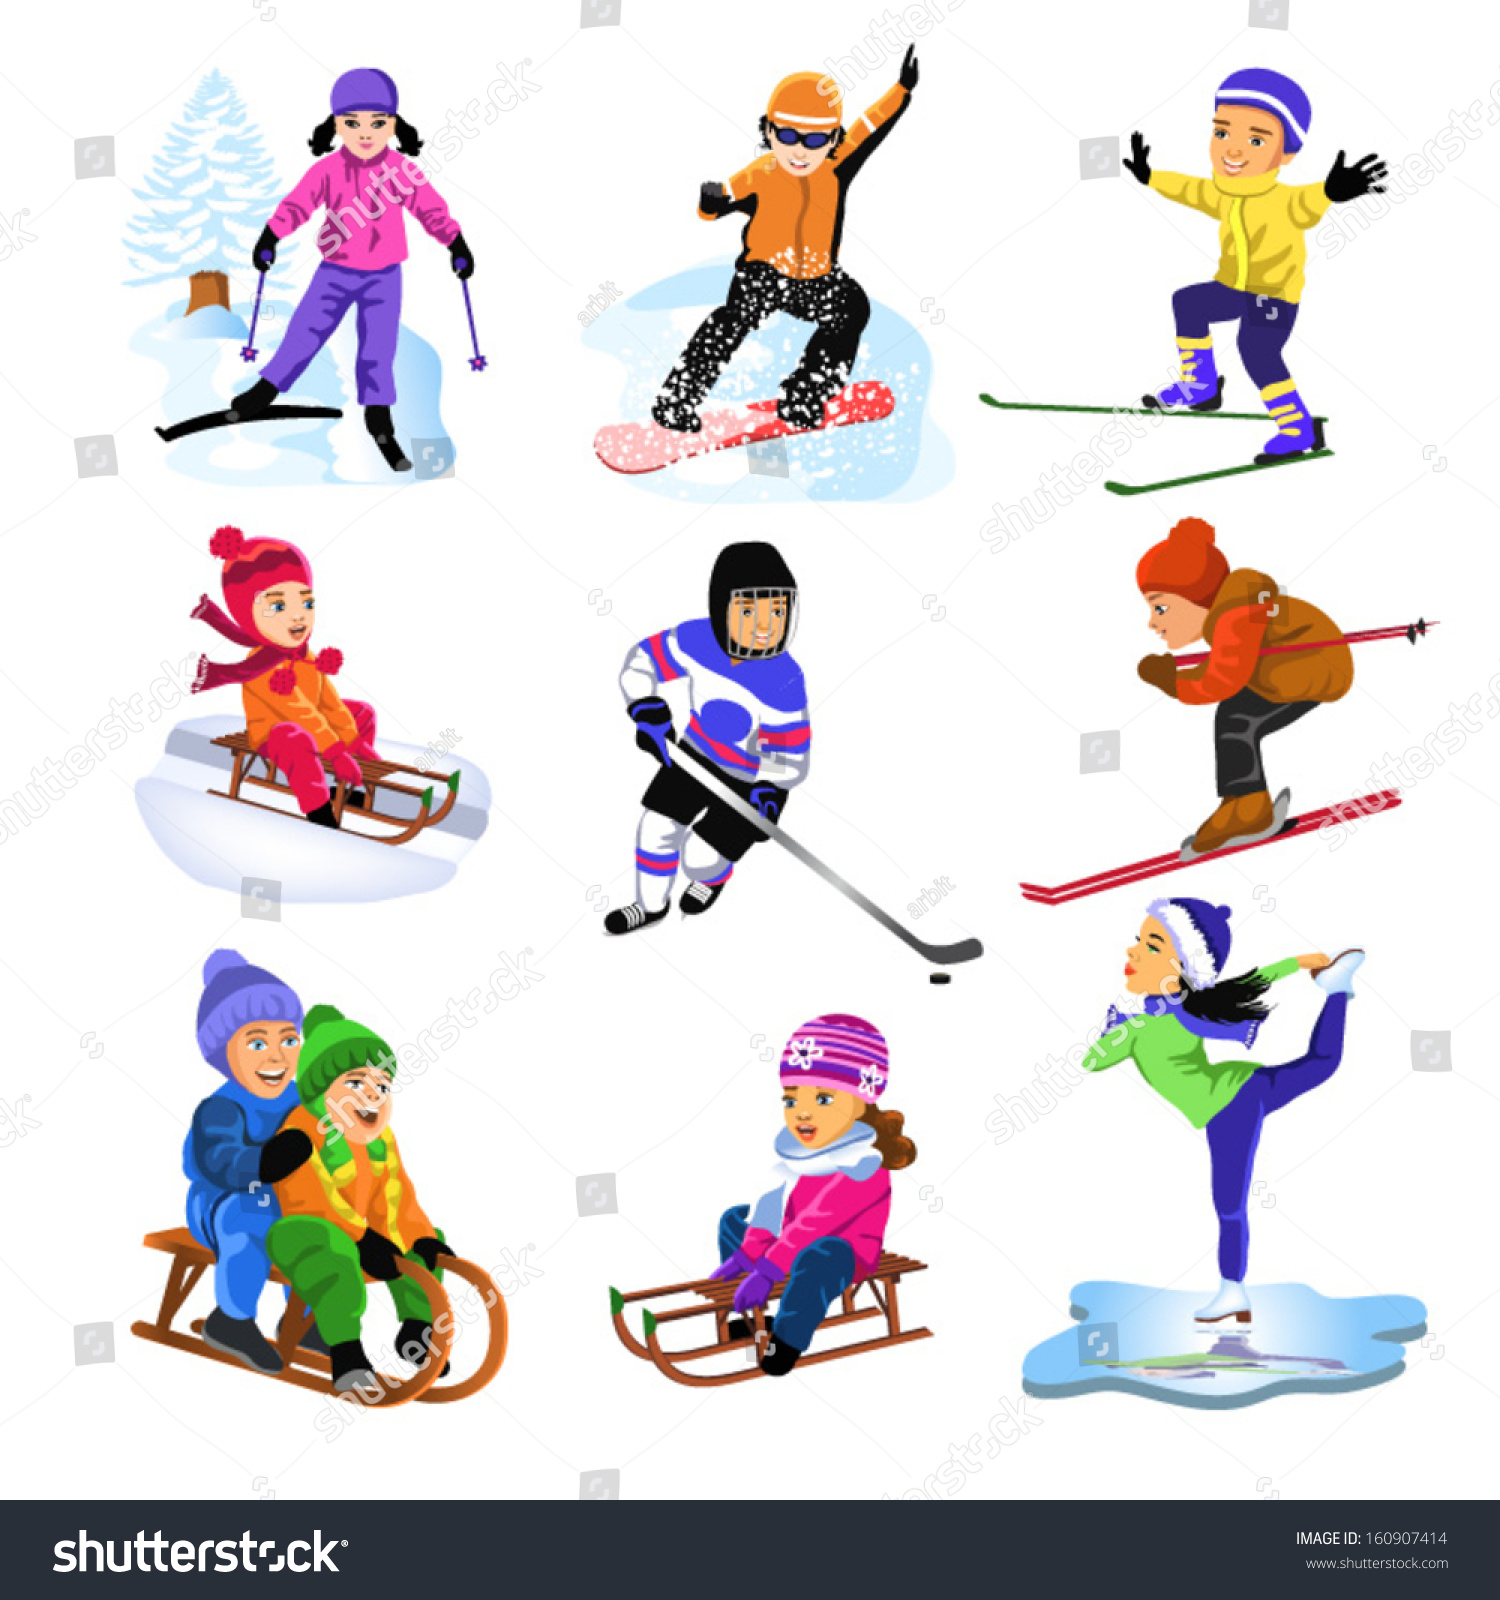 Winter Sports Stock Vector